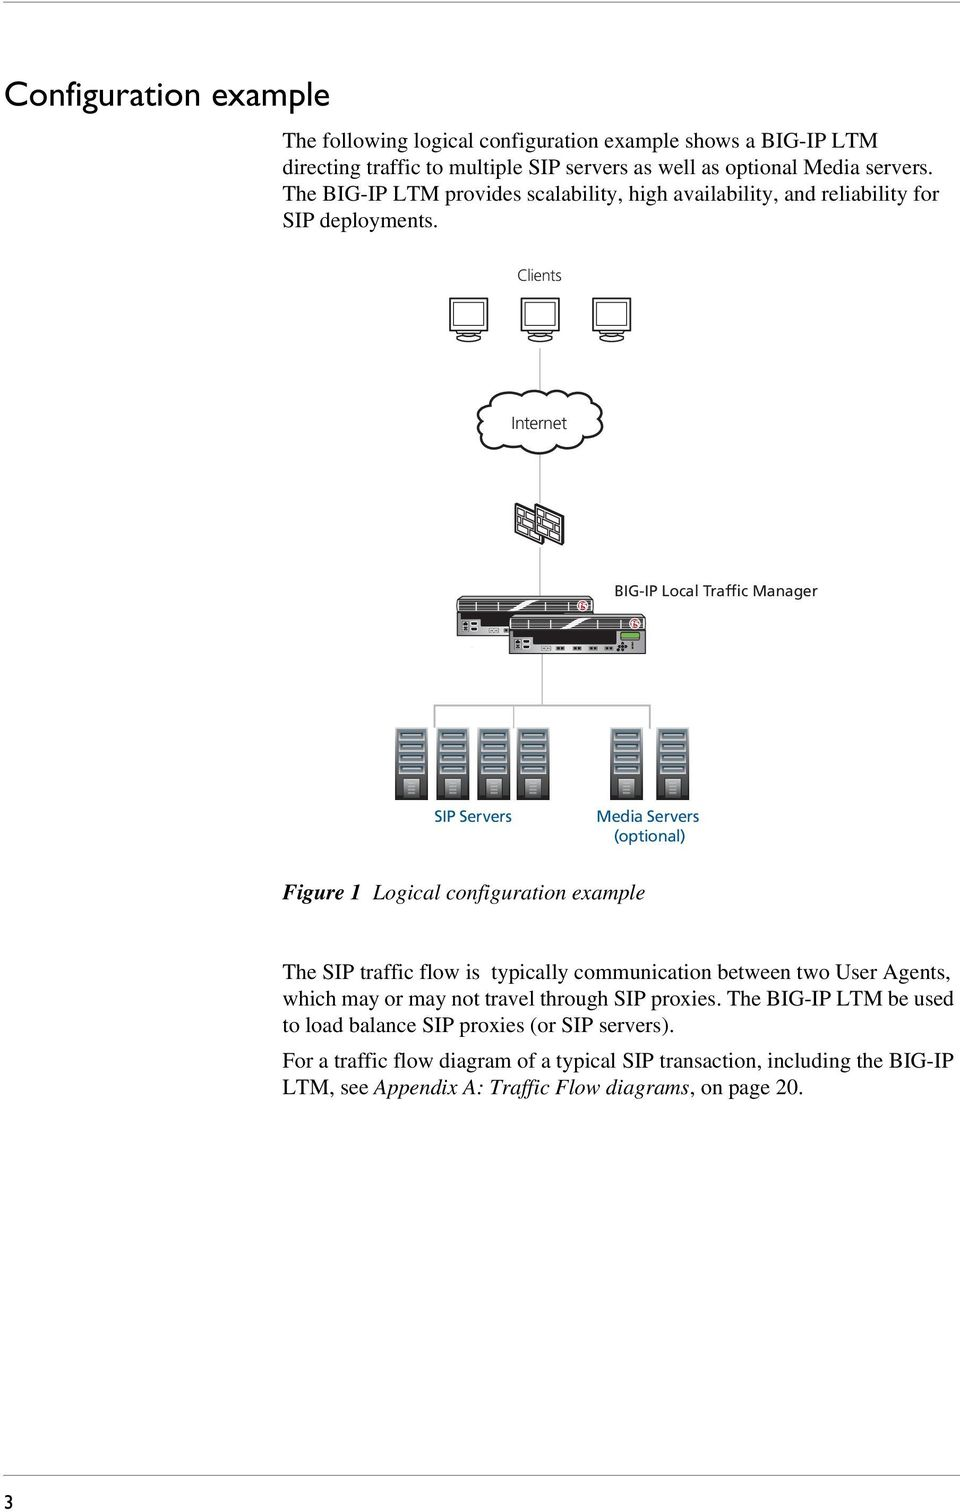 Clients Internet BIG-IP Local Traffic Manager SIP Servers Media Servers (optional) Figure 1 Logical configuration example The SIP traffic flow is typically communication